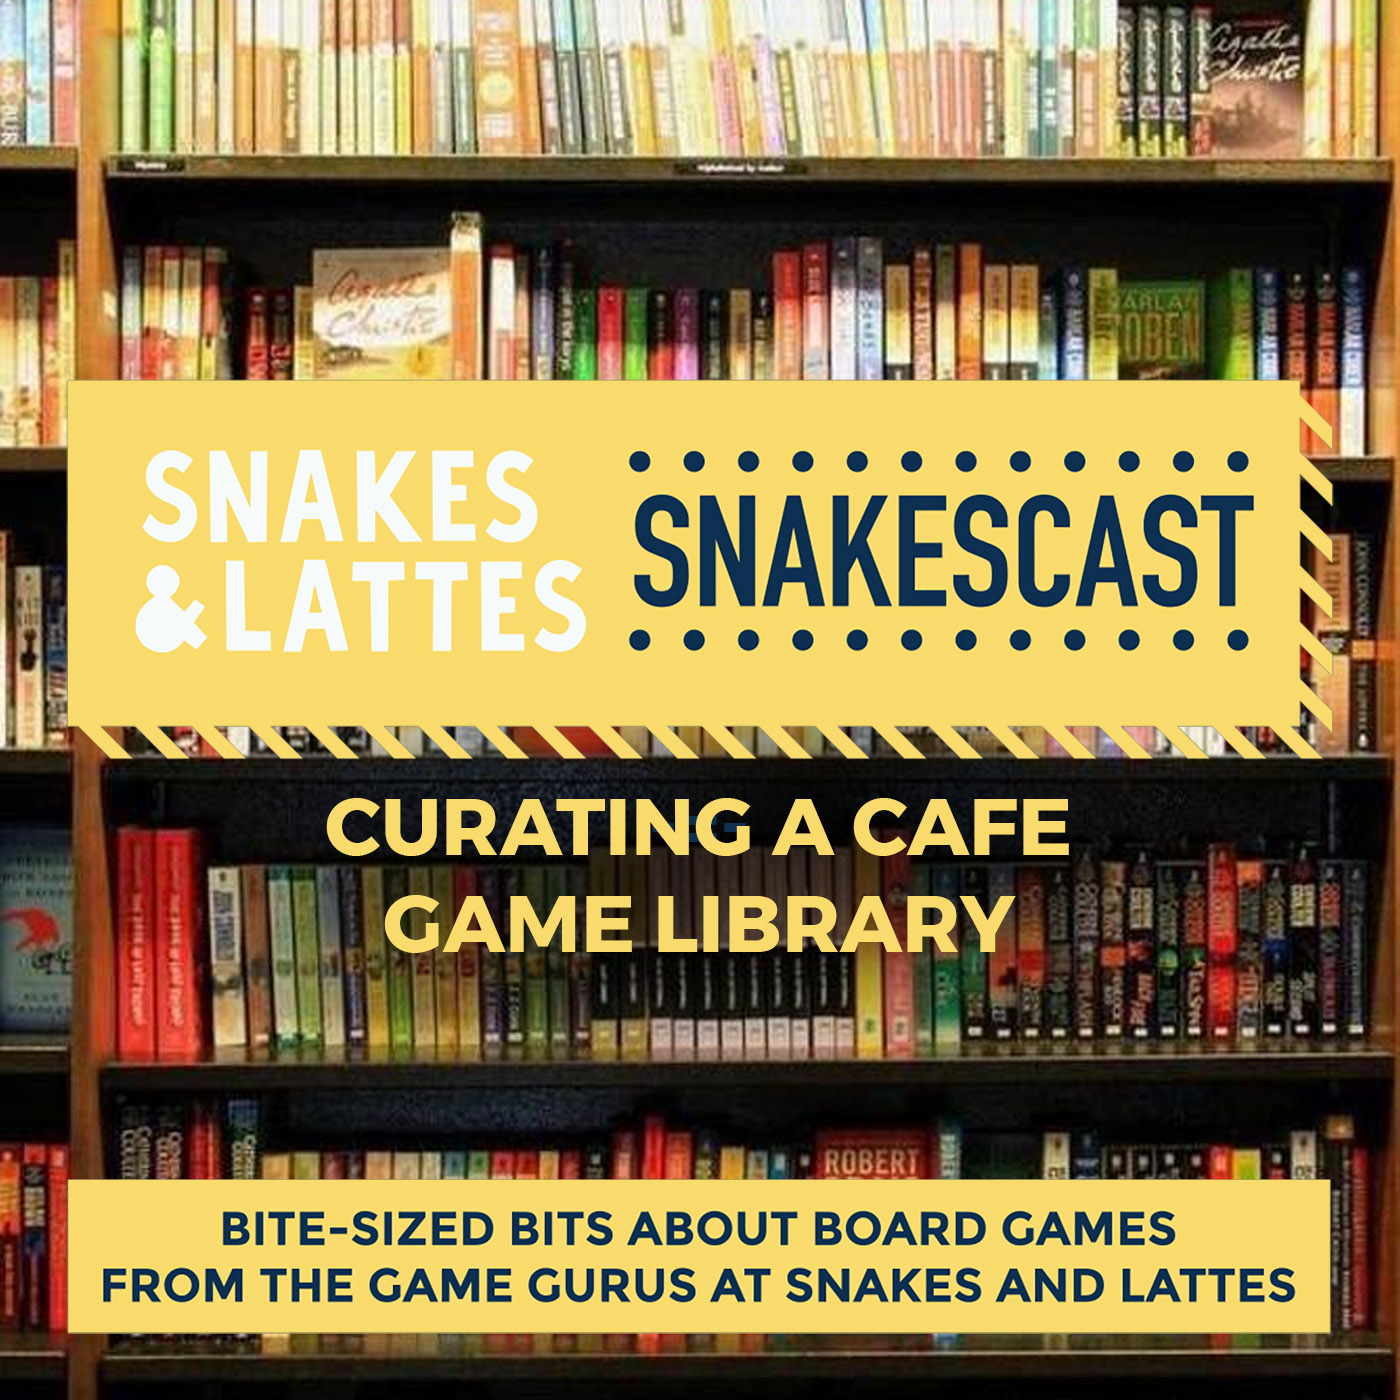 Curating a Café Game Library, Part 1 - What do our curators do?